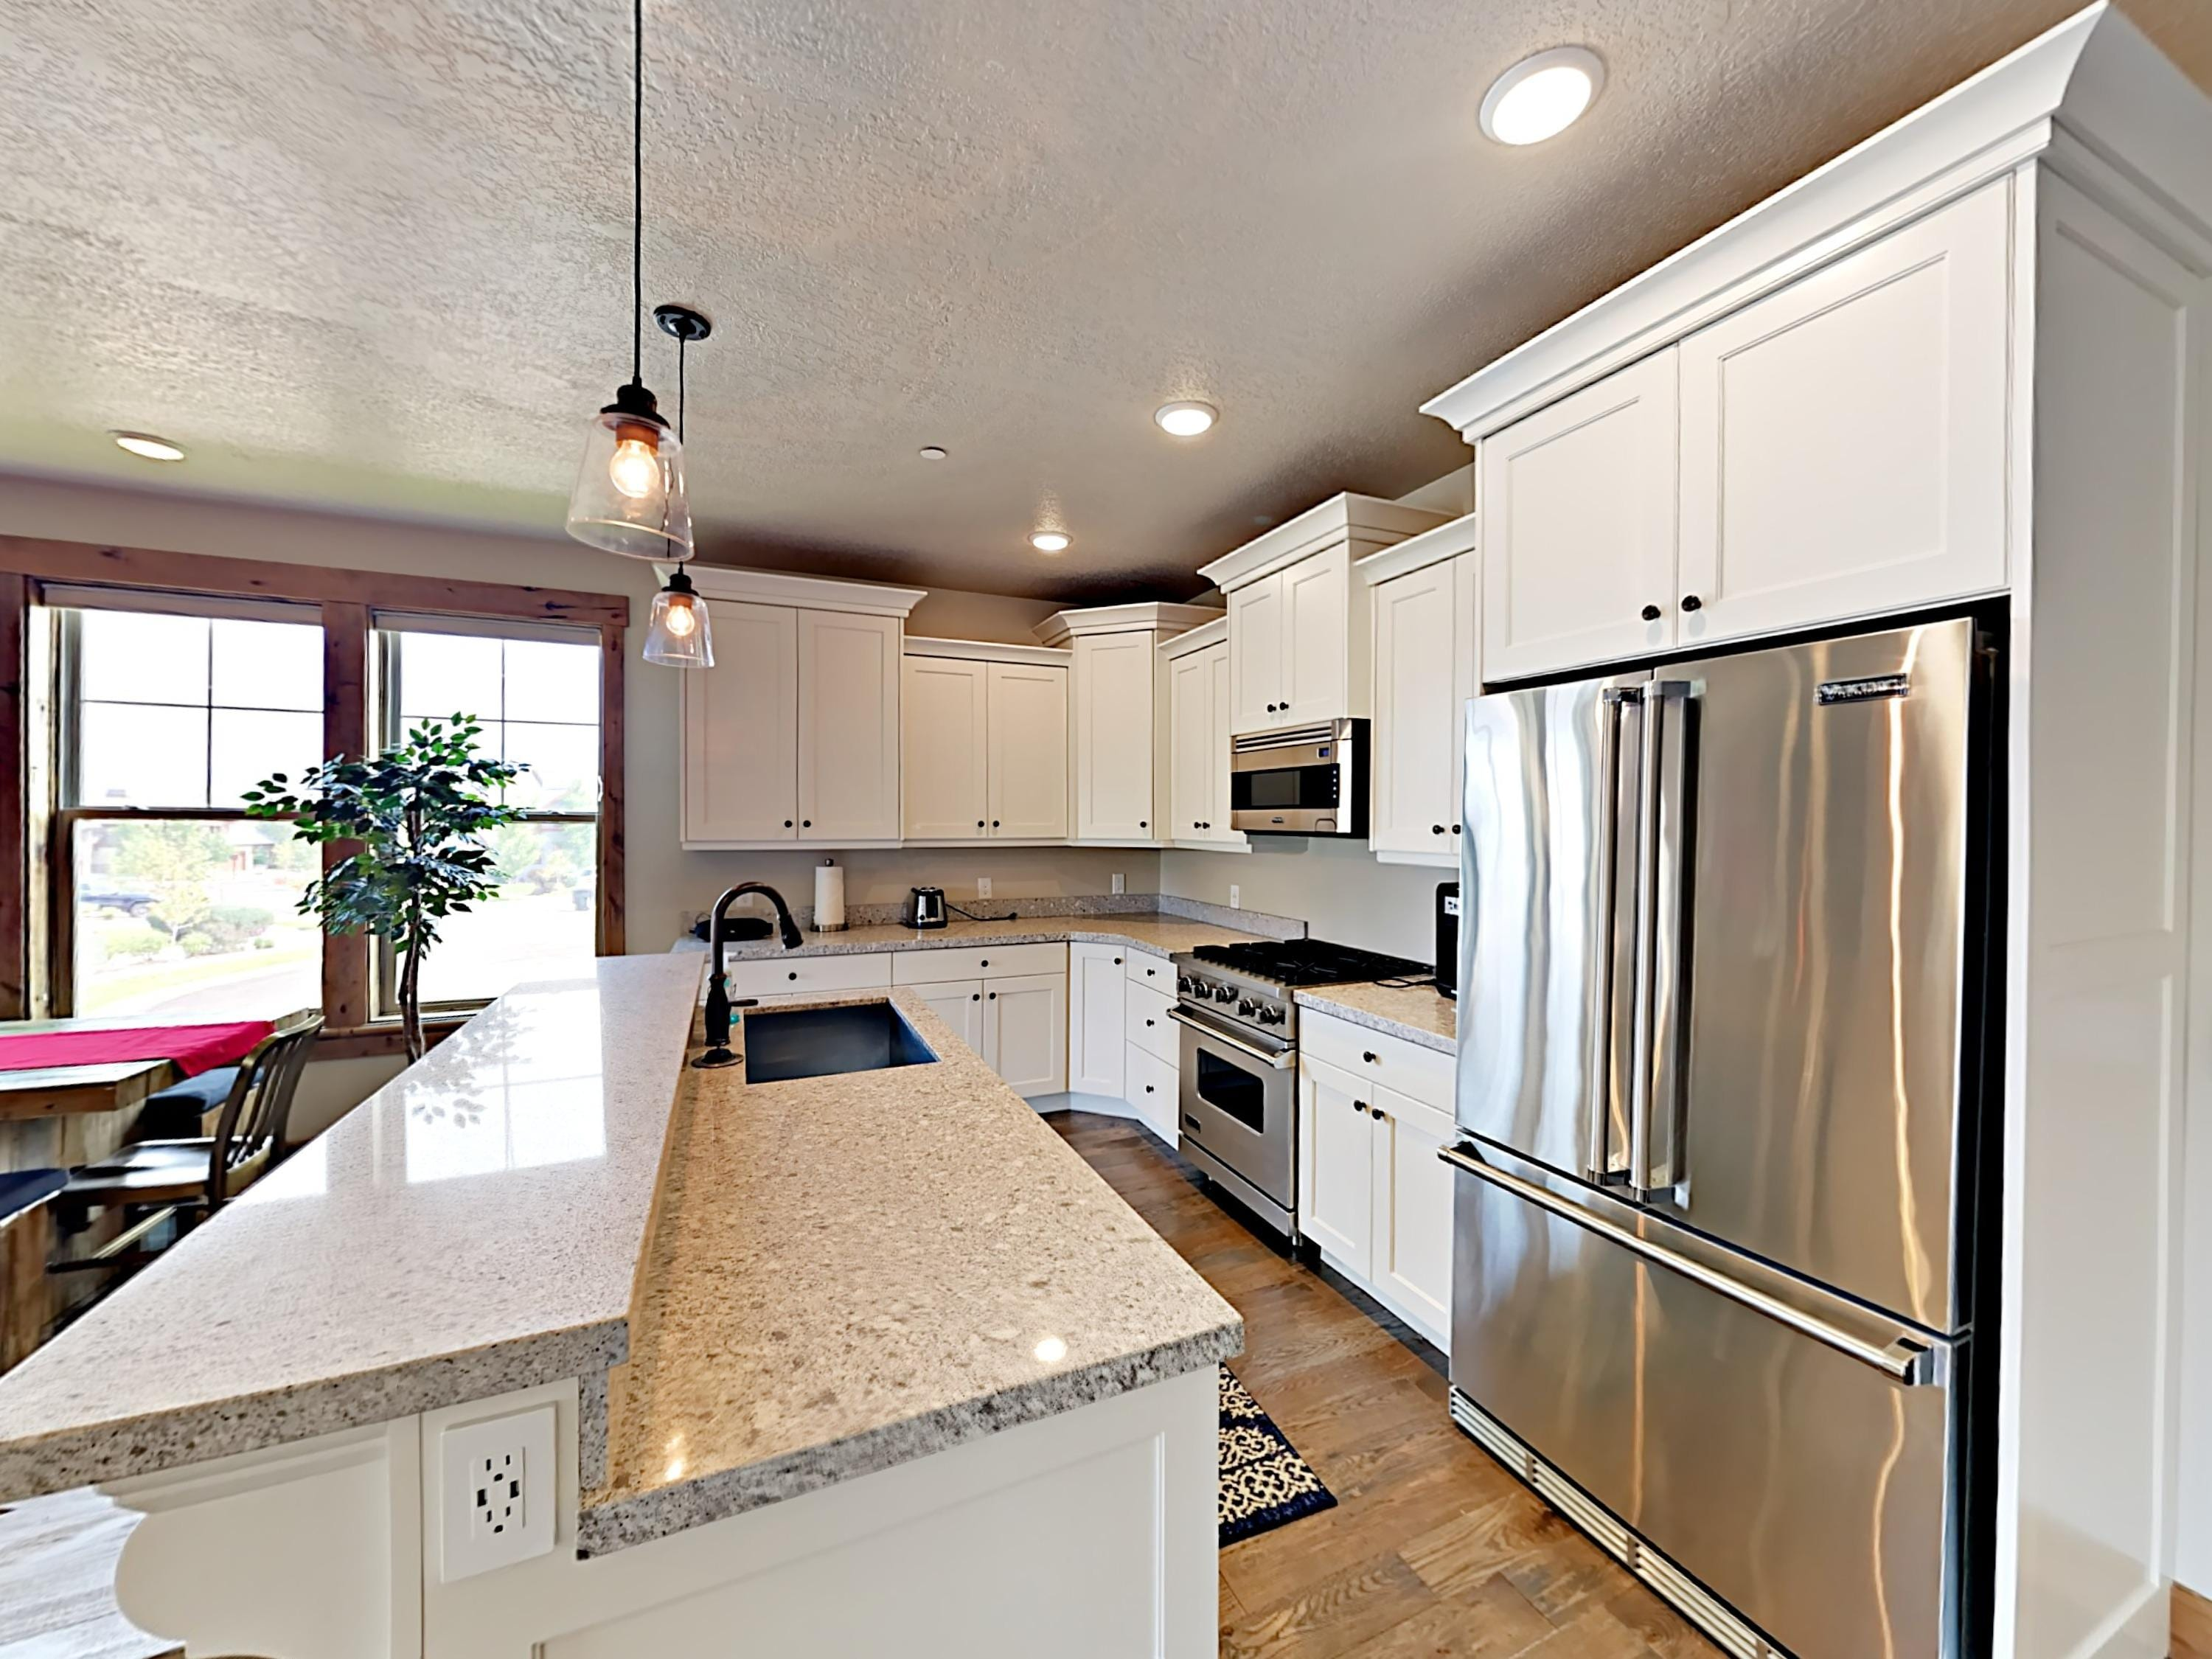 A gorgeous gourmet kitchen includes a starter supply of kitchen amenities (dish soap, paper towels).